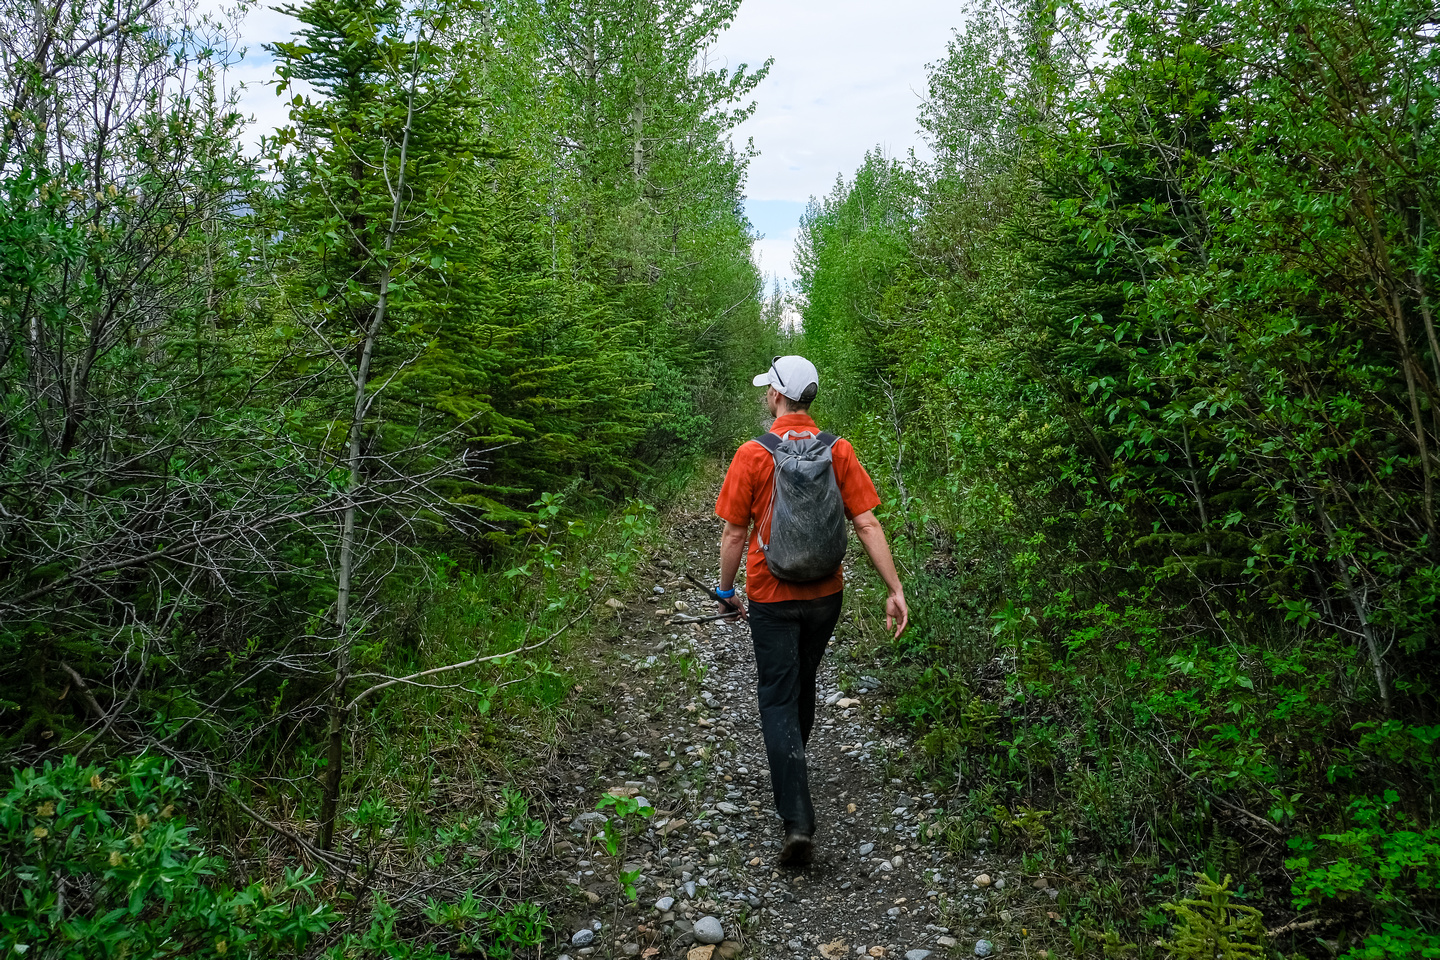 Walking up the Red Deer River / Cascade Fire Road trail.